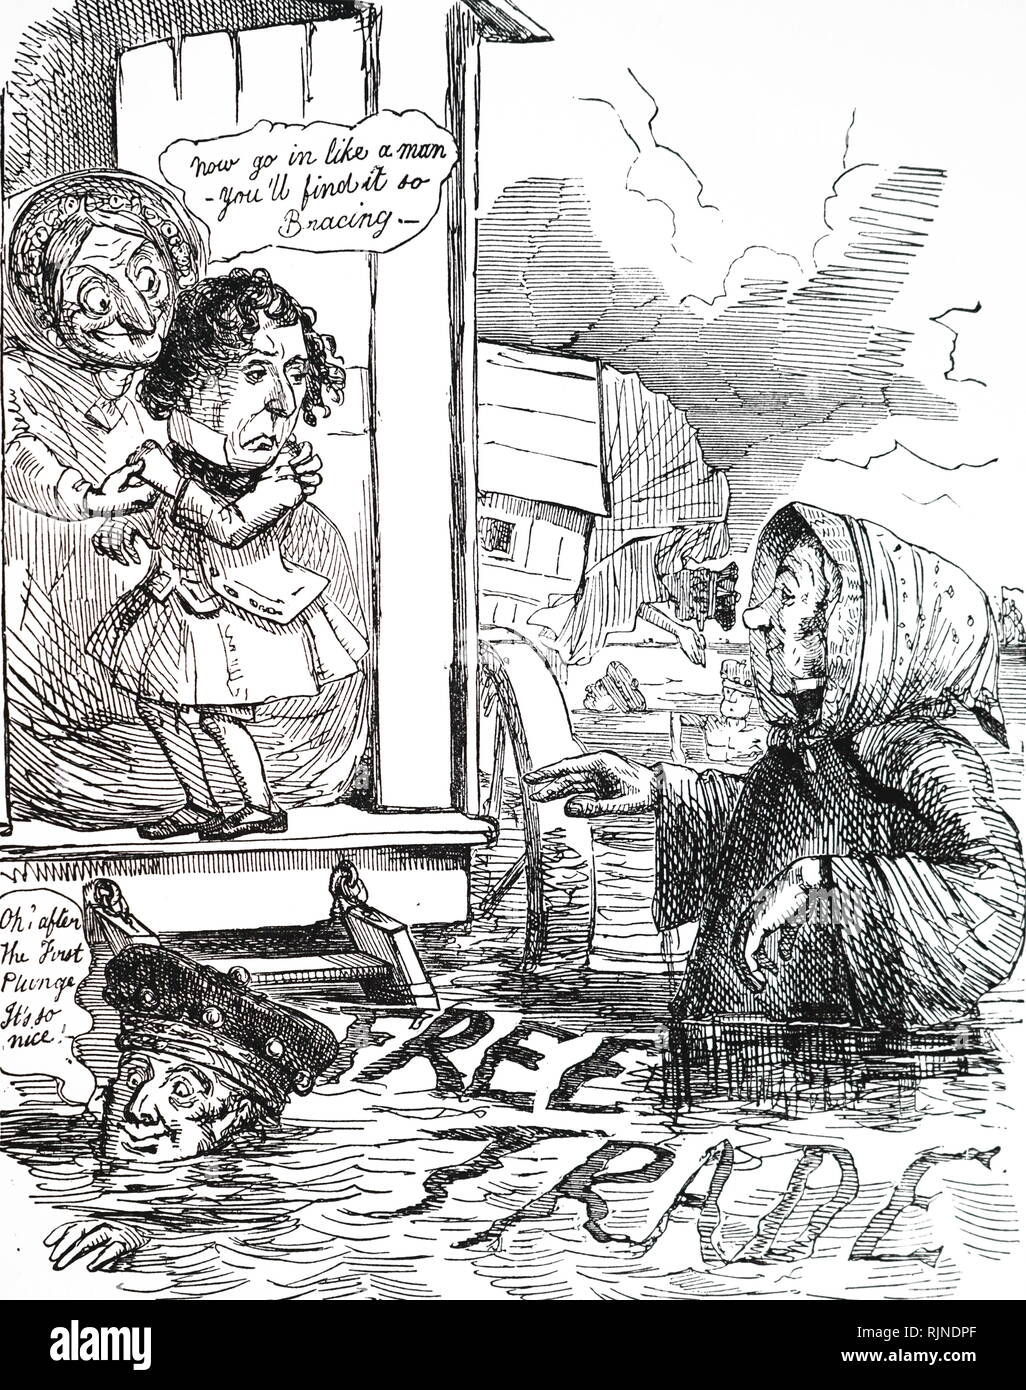 A cartoon depicting Richard Cobden waiting to a hesitant Benjamin Disraeli to take the plunge in support of Free Trade. Robert Peel (bottom left) has already taken the leap and found it not to be as bad as he had expected. Illustrated by John Leech. - Stock Image